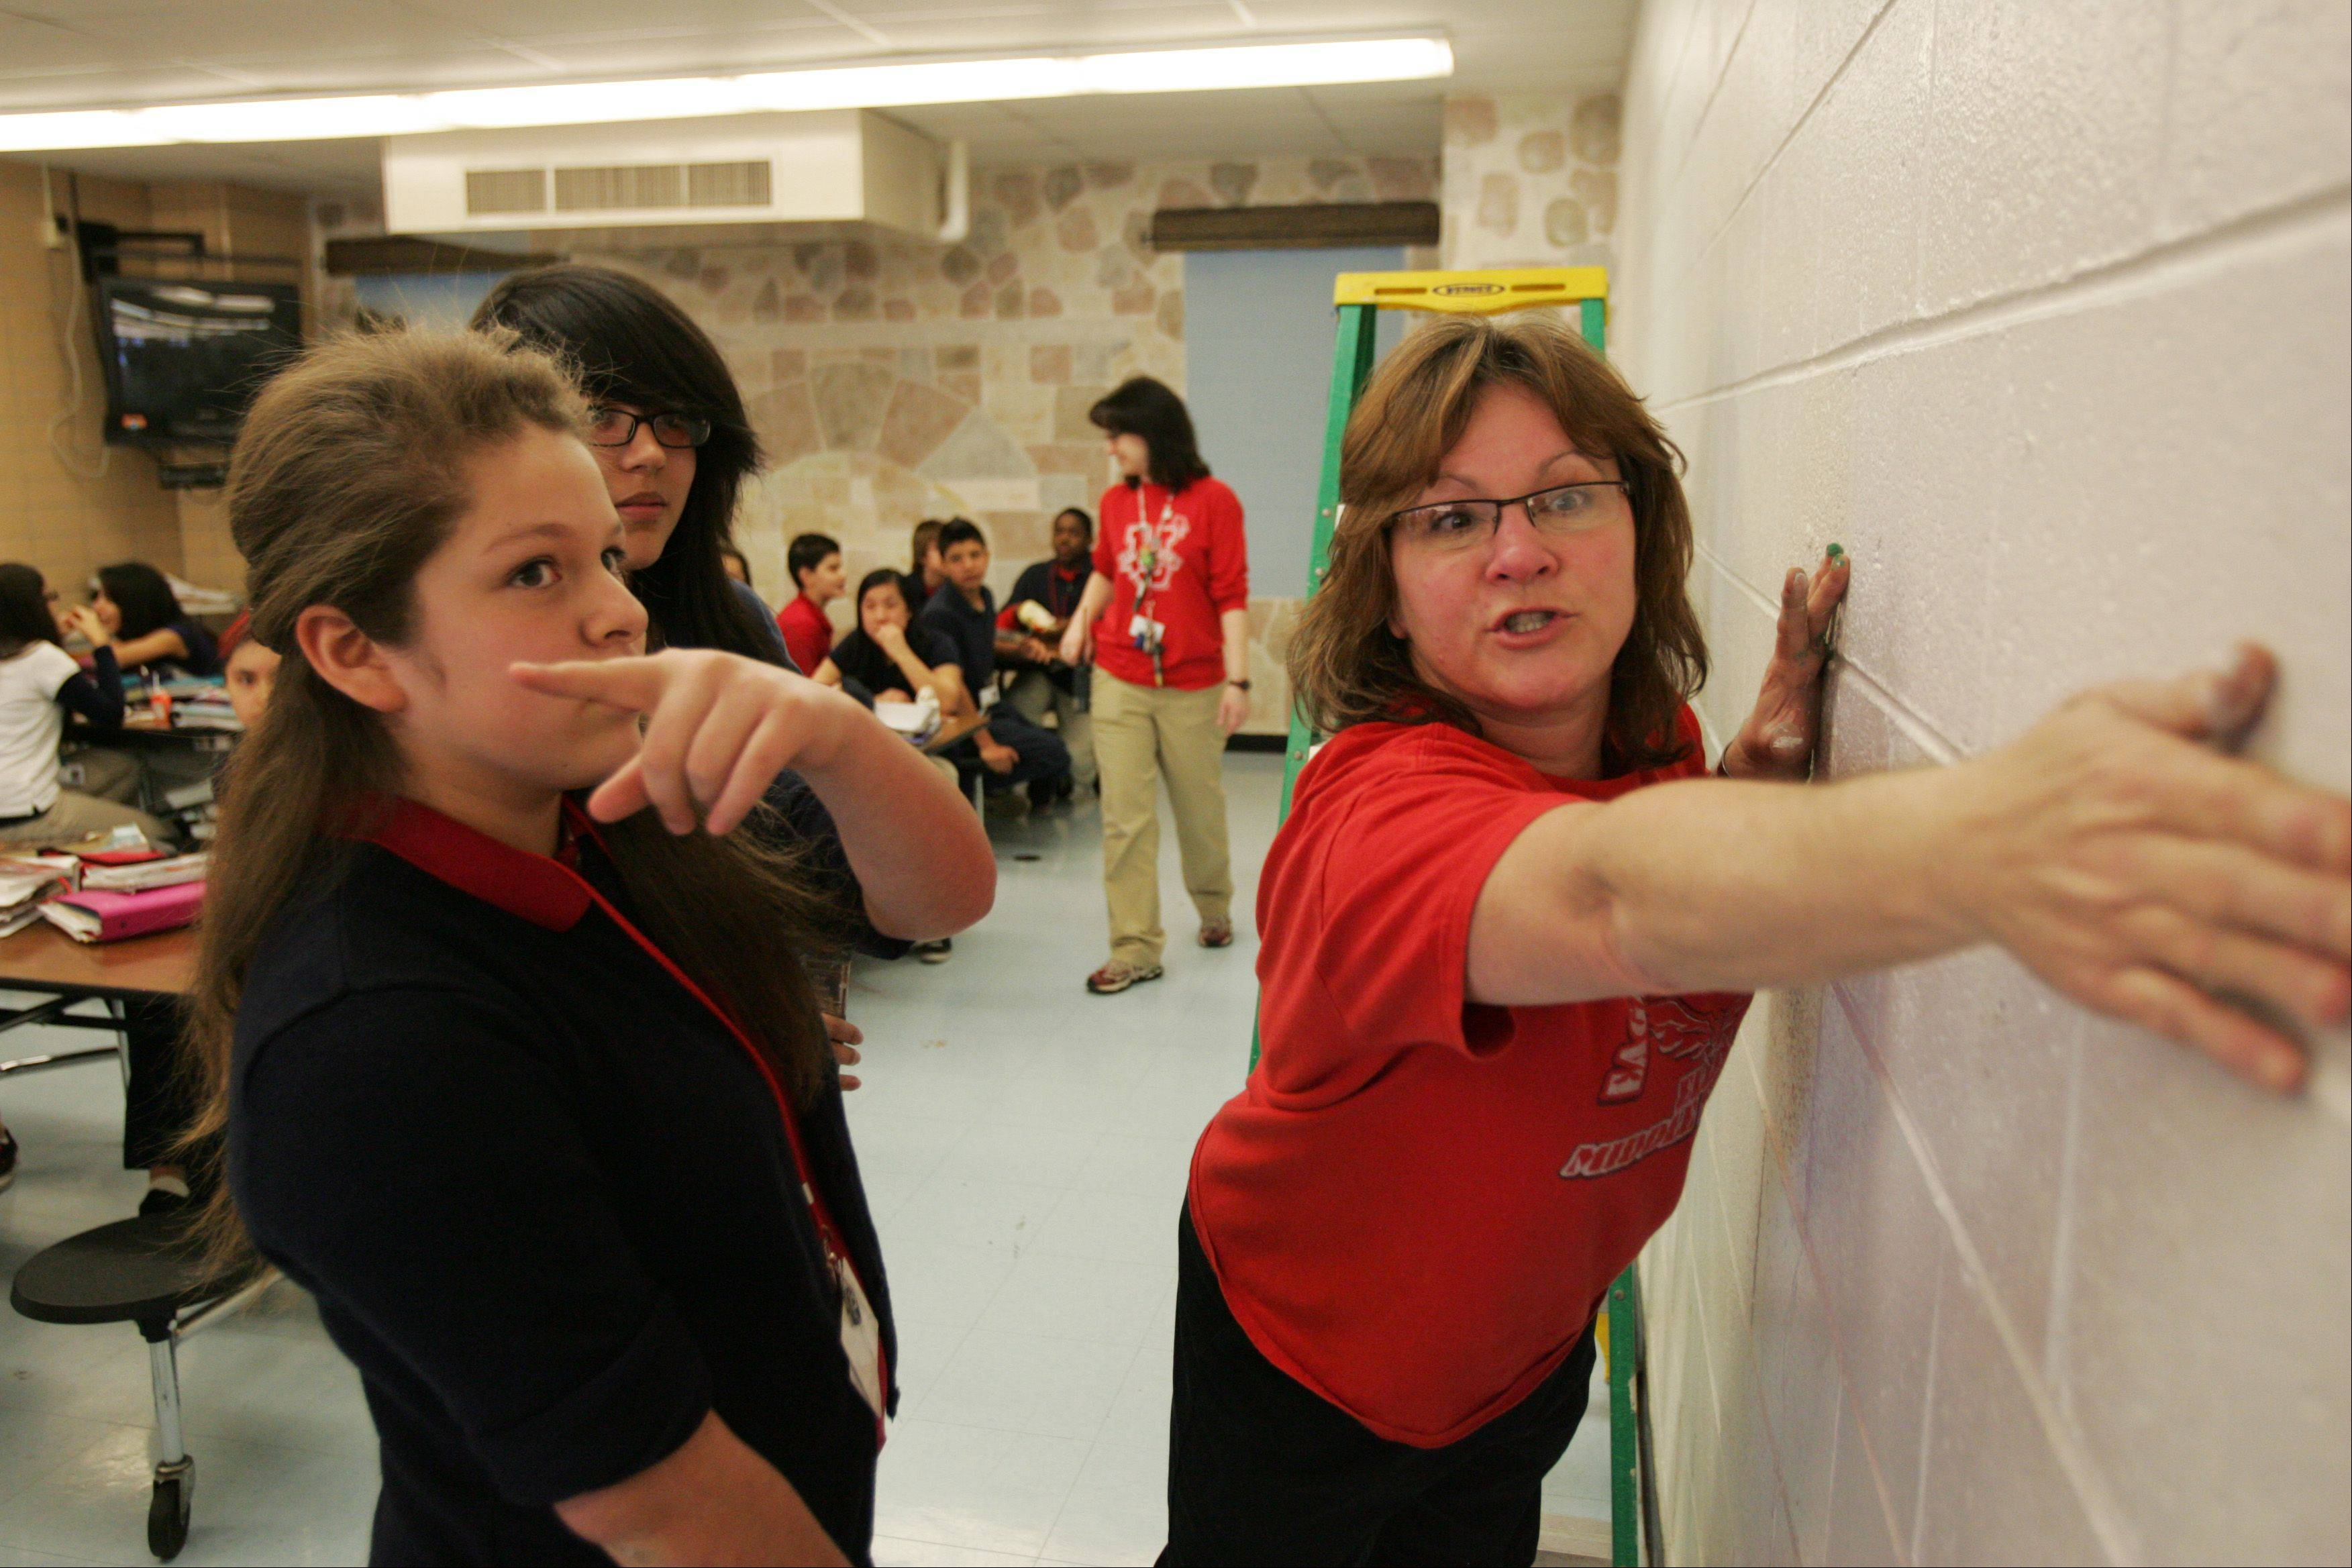 Steurer works with Ellis Middle School eighth-graders Guadalupe Hernandez, front, and Julissa Renteria as they prepare to paint a portion of the cafeteria wall.